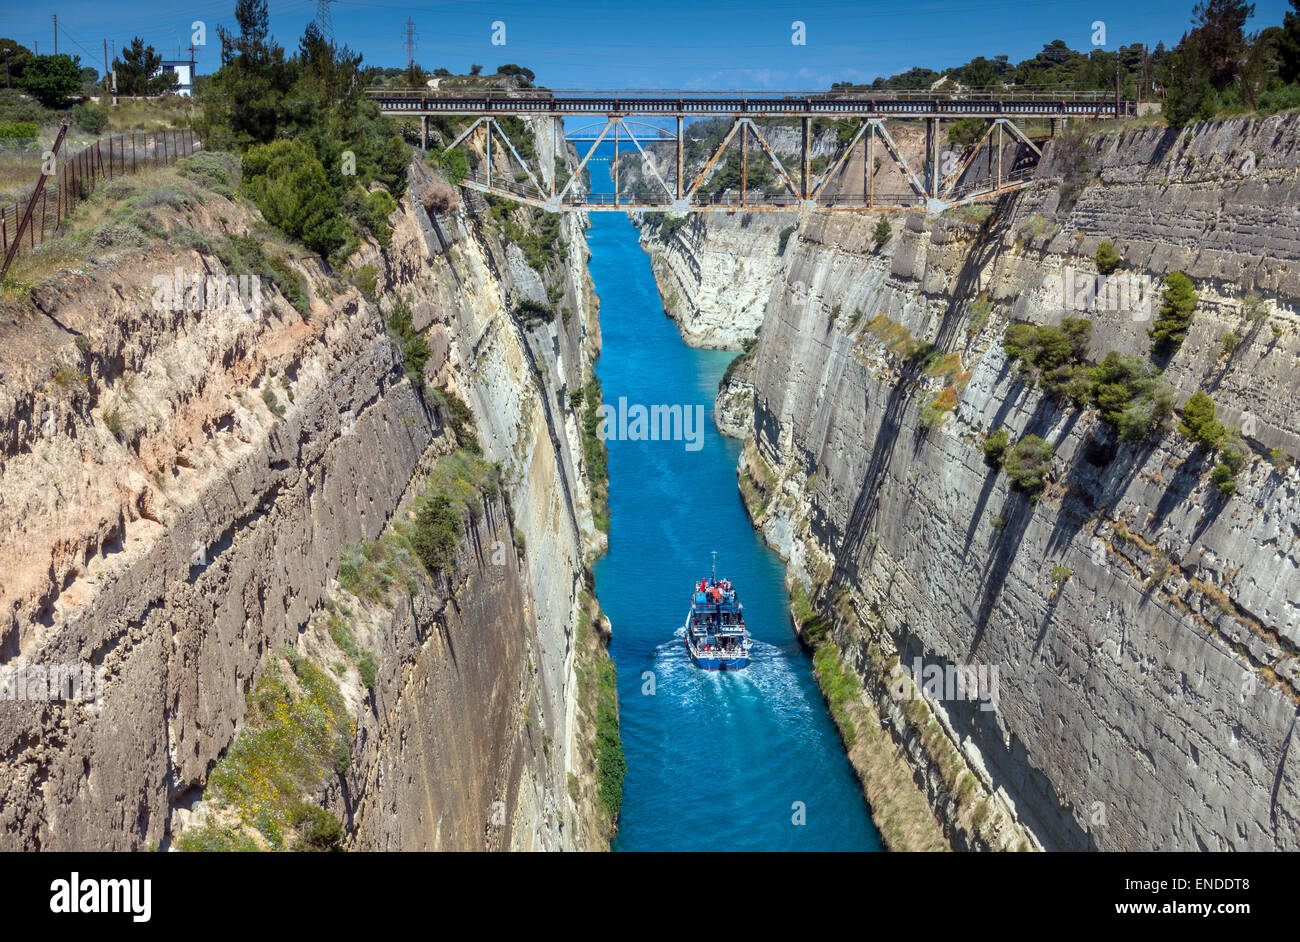 Corinth Canal Places of Tourist in The World